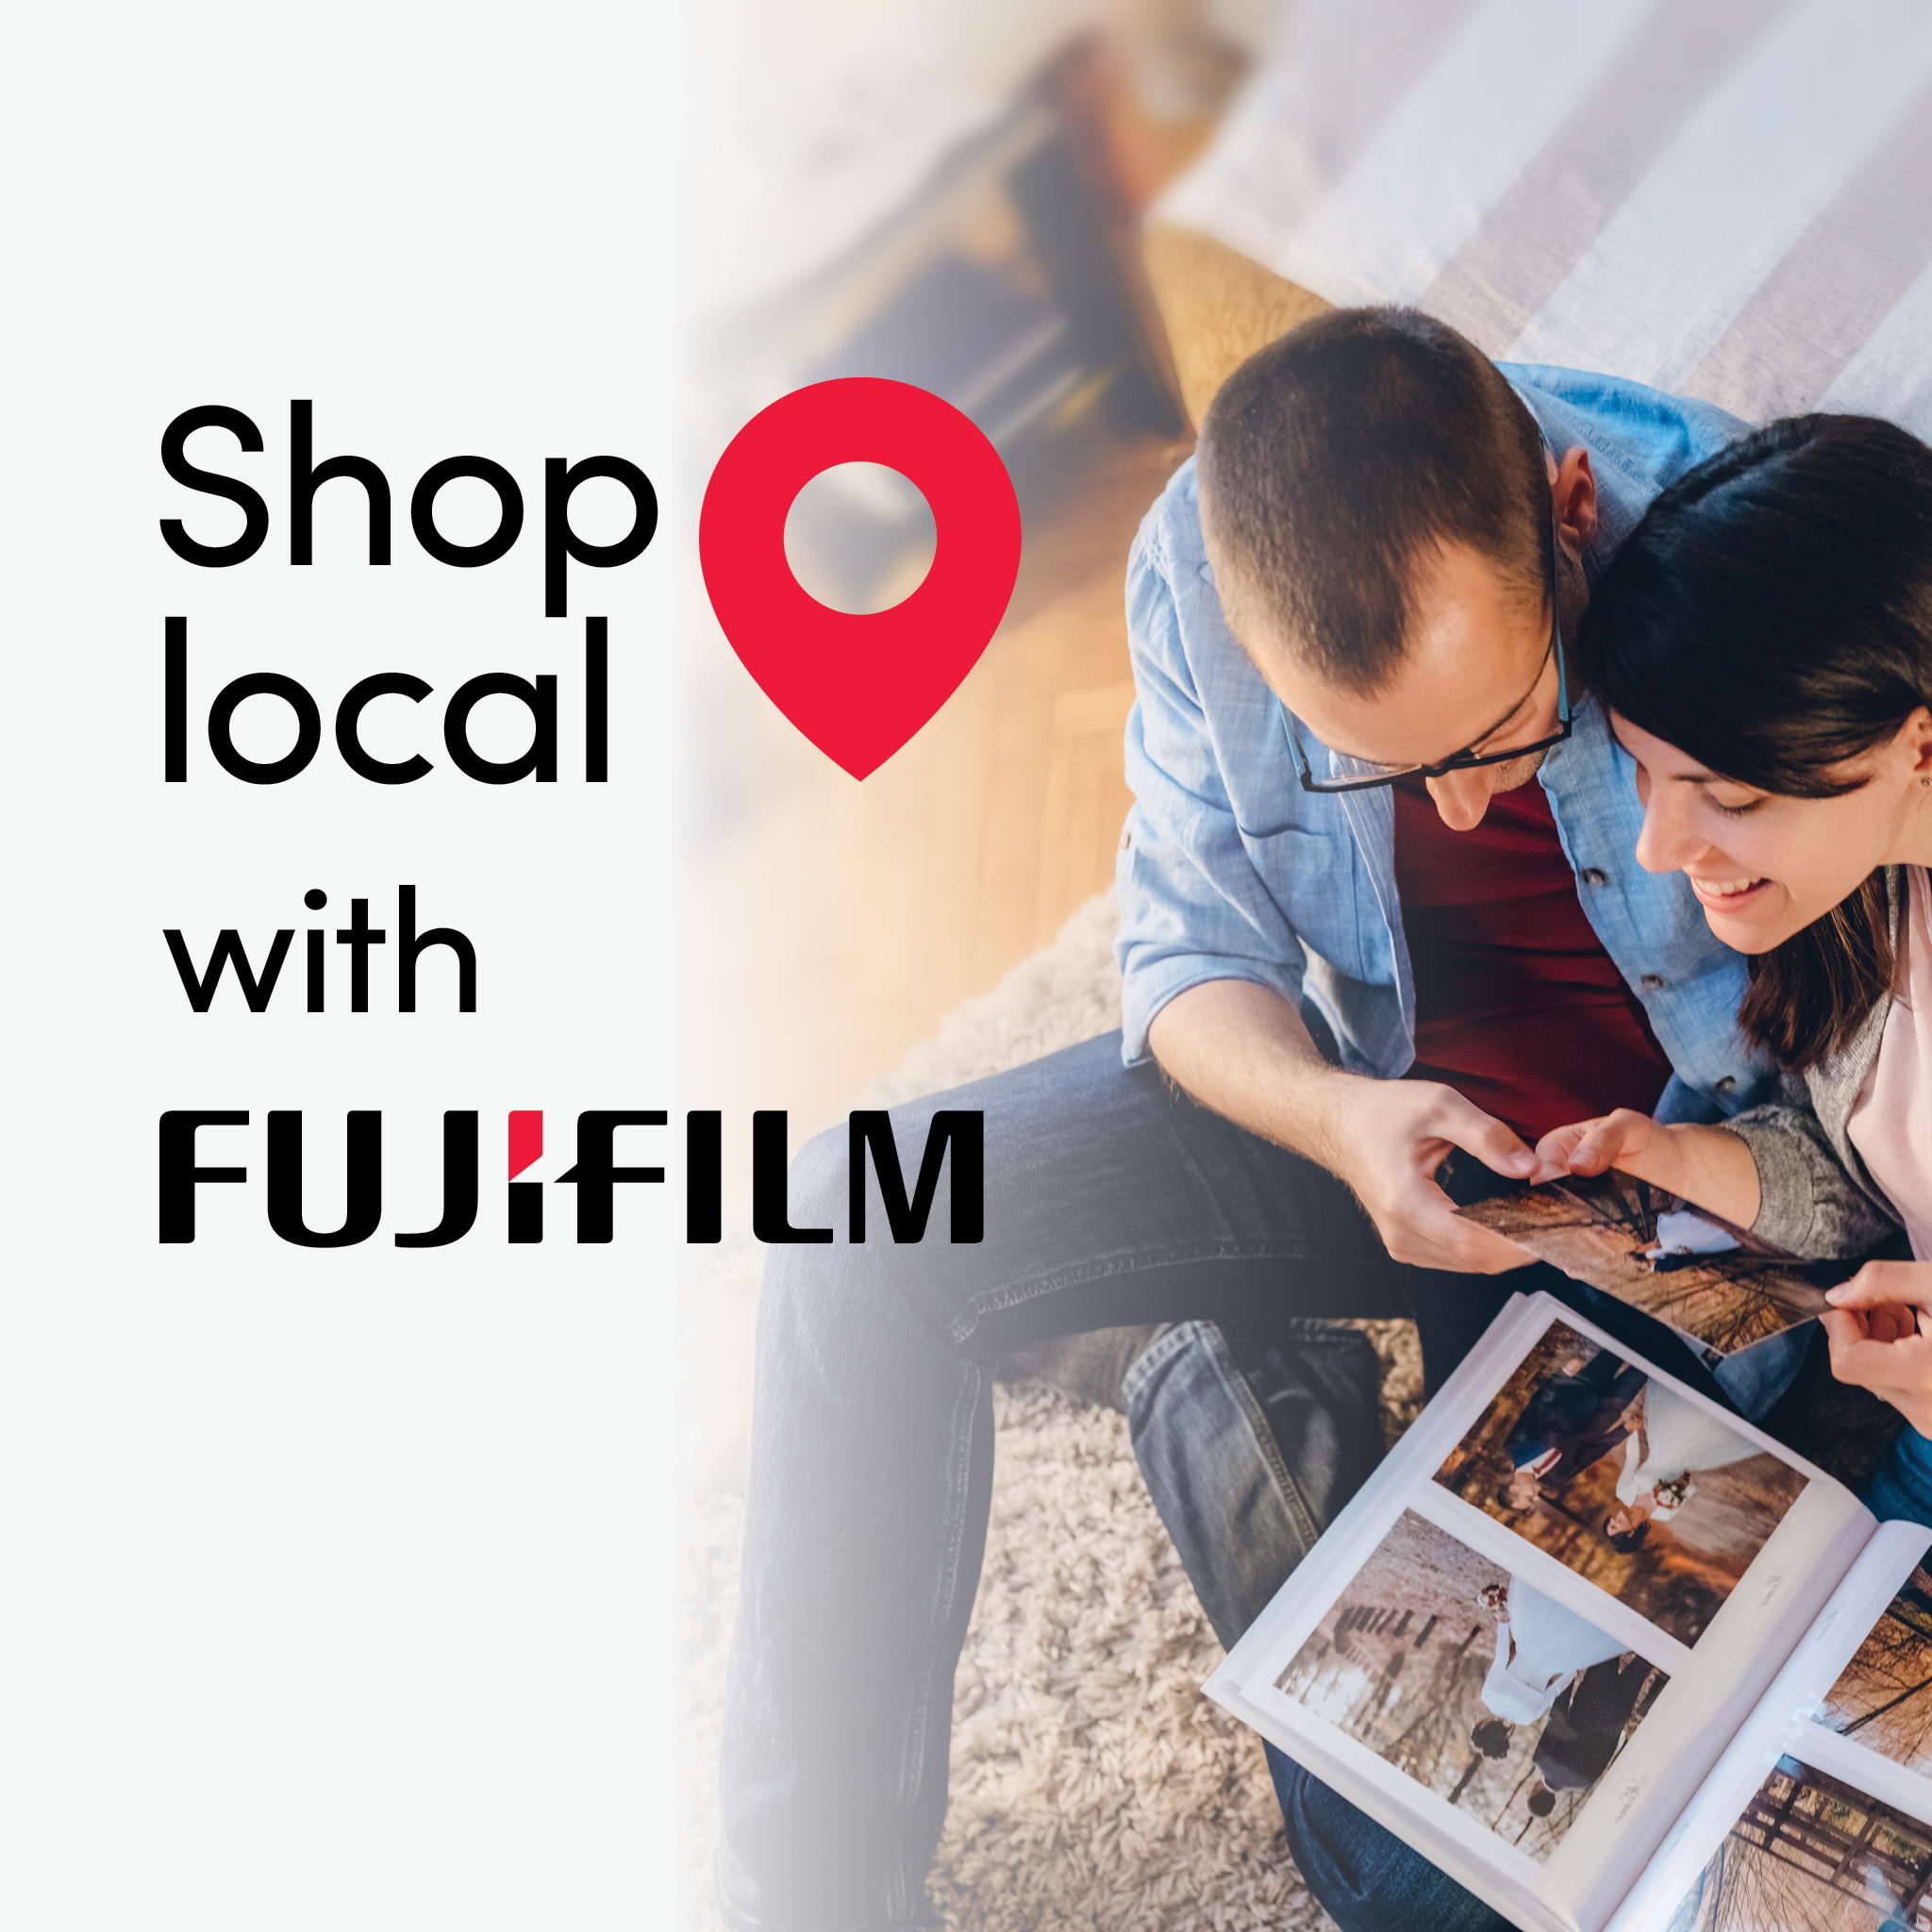 Fujifilm pushes Shop Local campaign to support retailers - Amateur Photographer